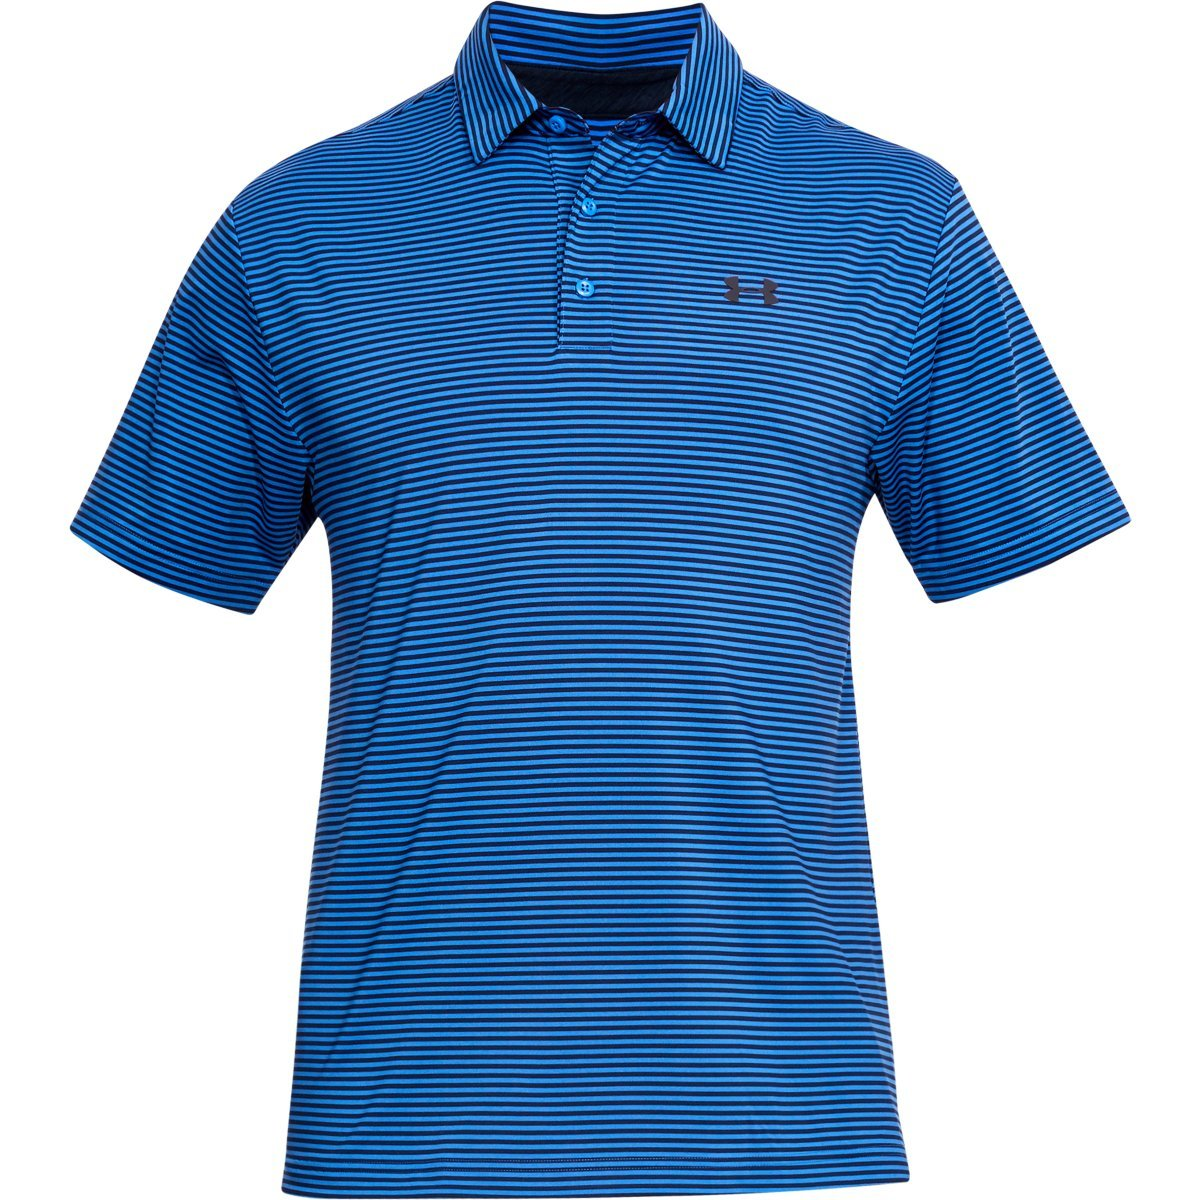 Under Armour Men's Playoff Polo - Blue, L